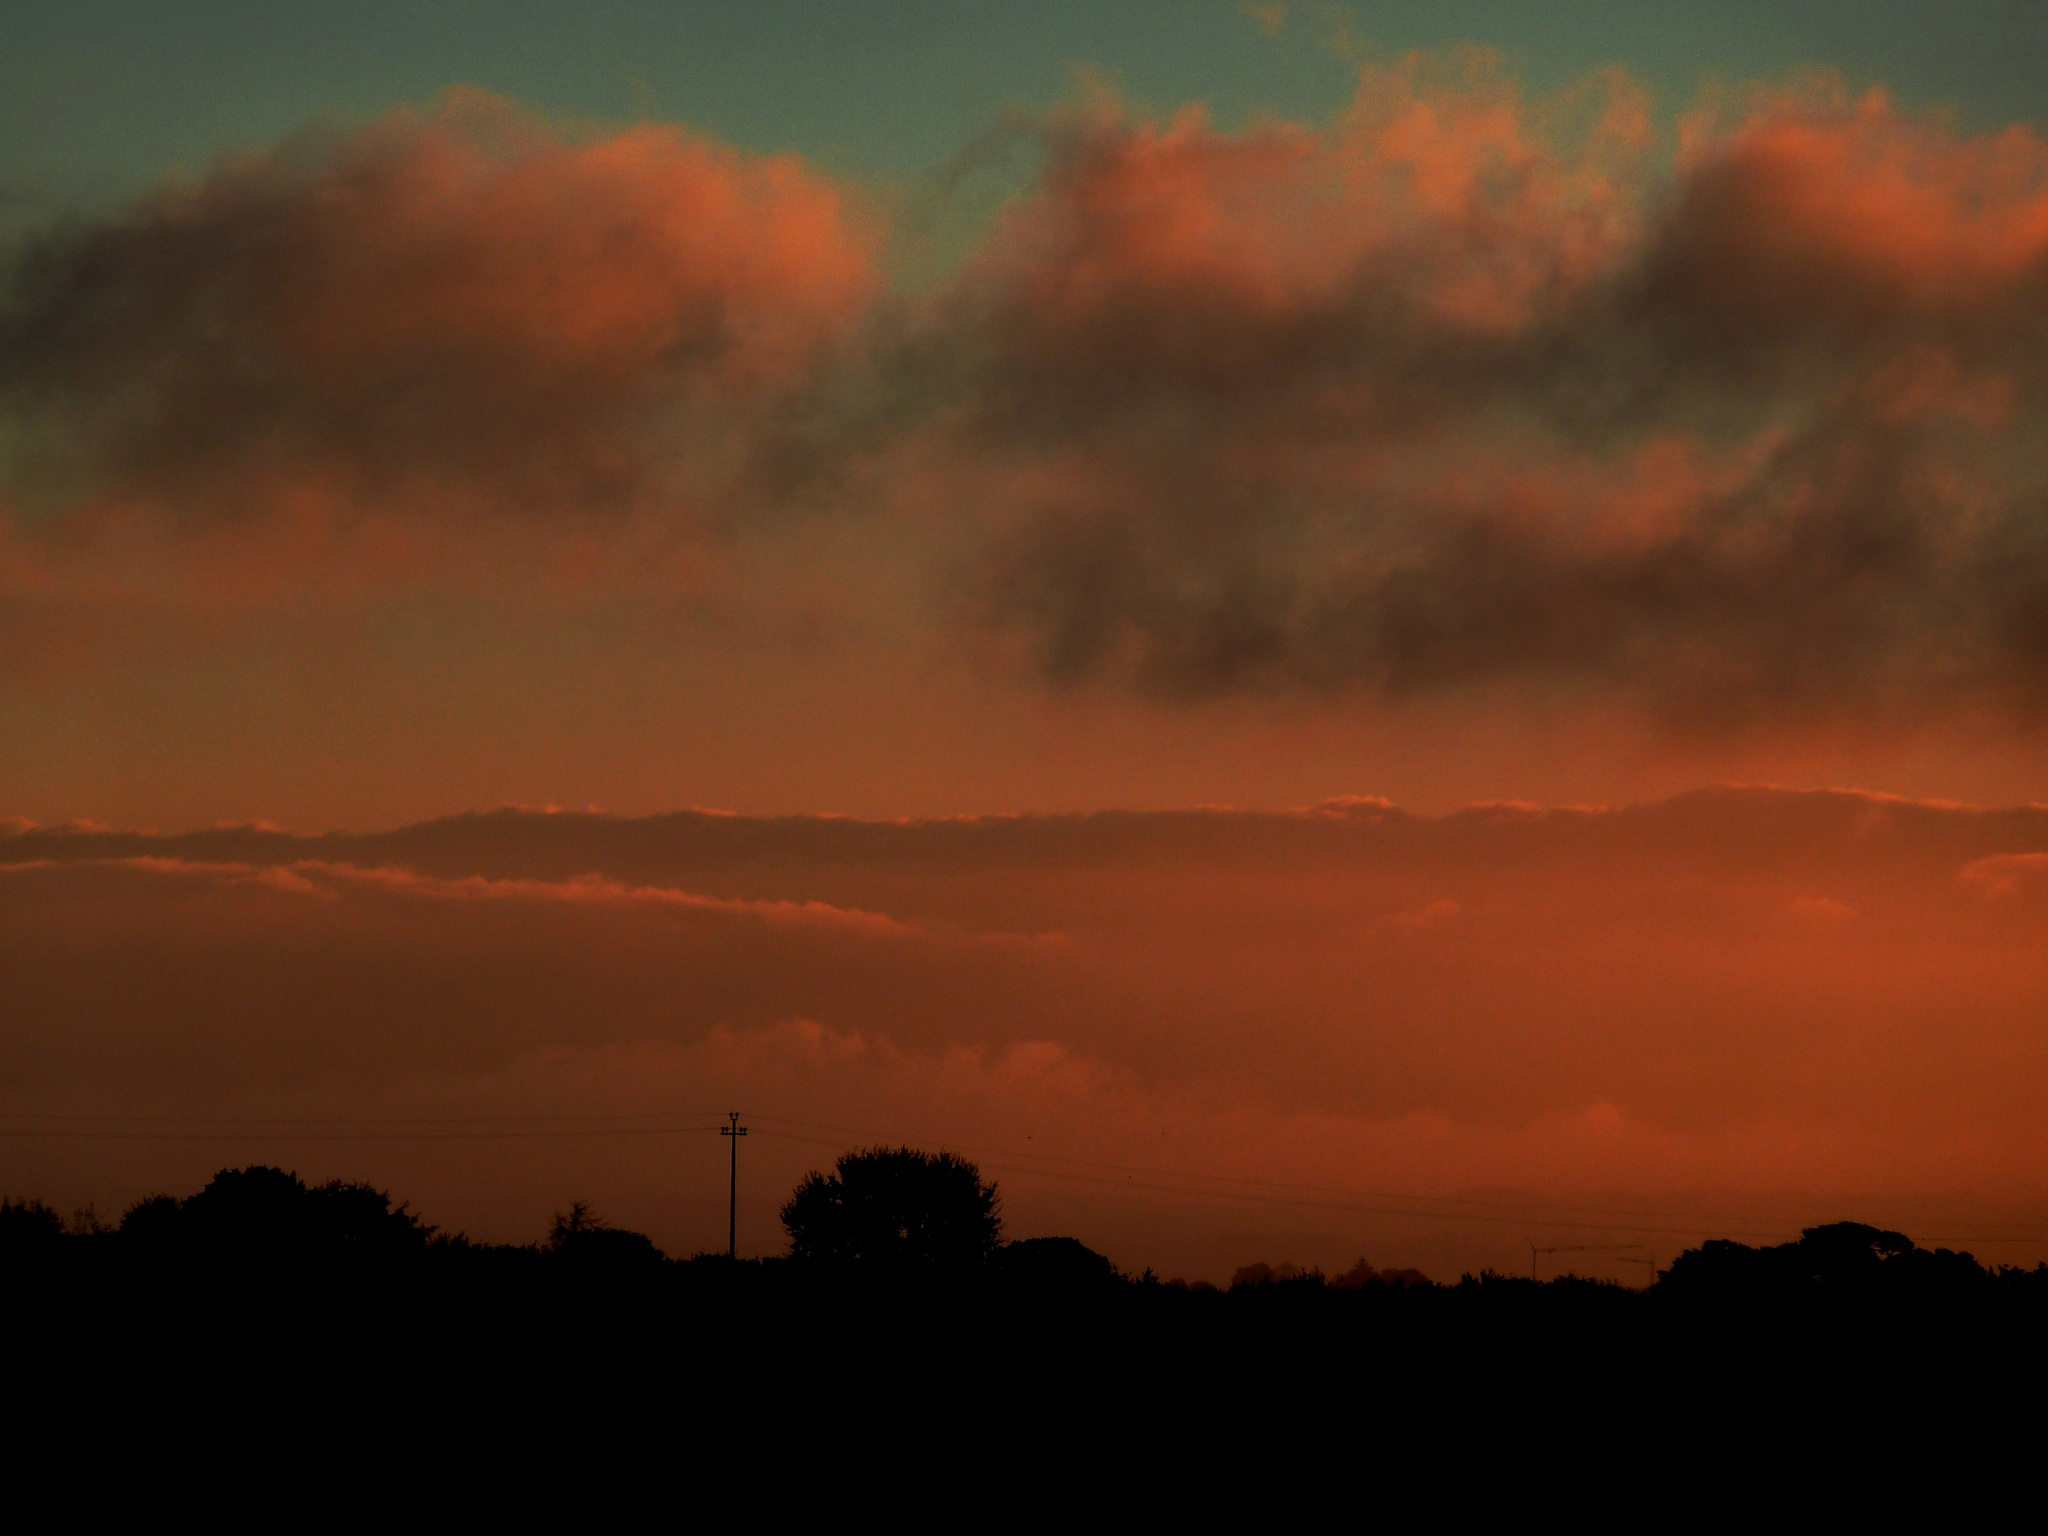 The ruddy blush of sunrise. A view from the terrace. by Anton Agalbato